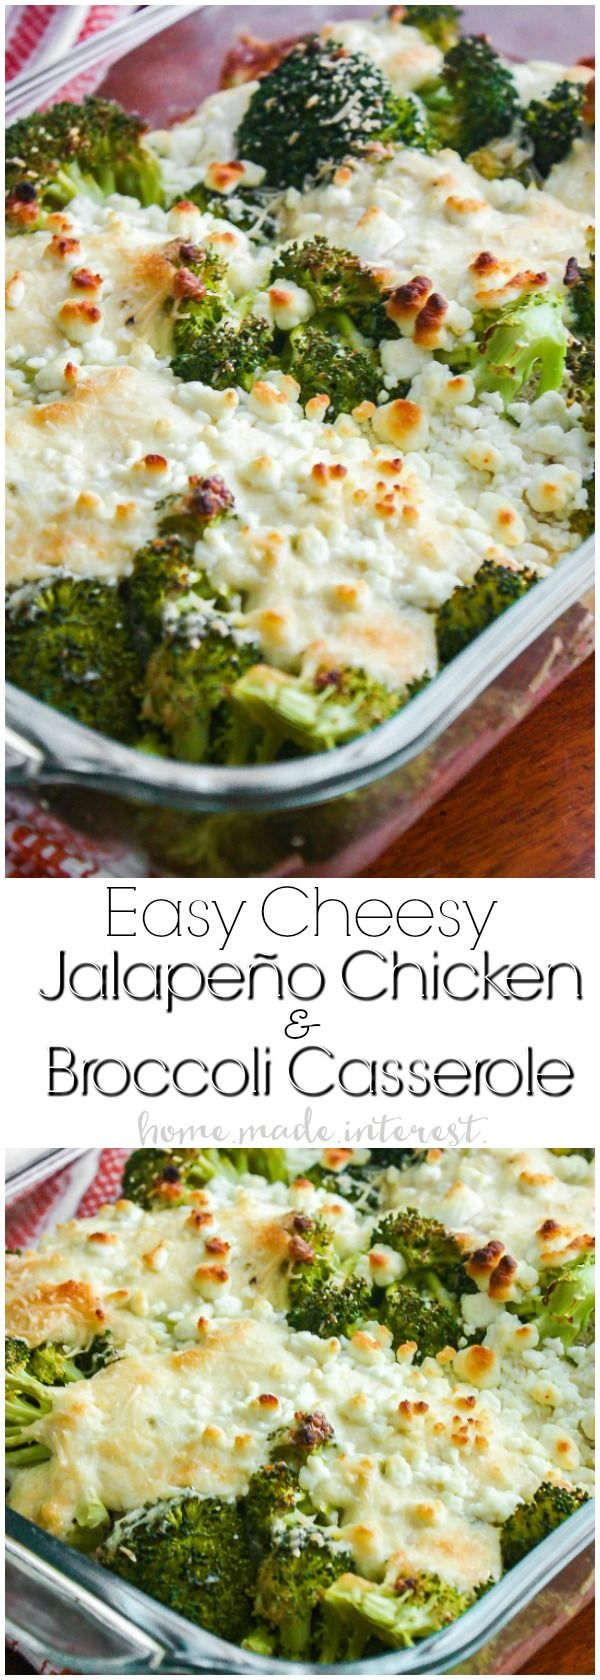 Low Carb Jalapeno Chicken and Broccoli Casserole